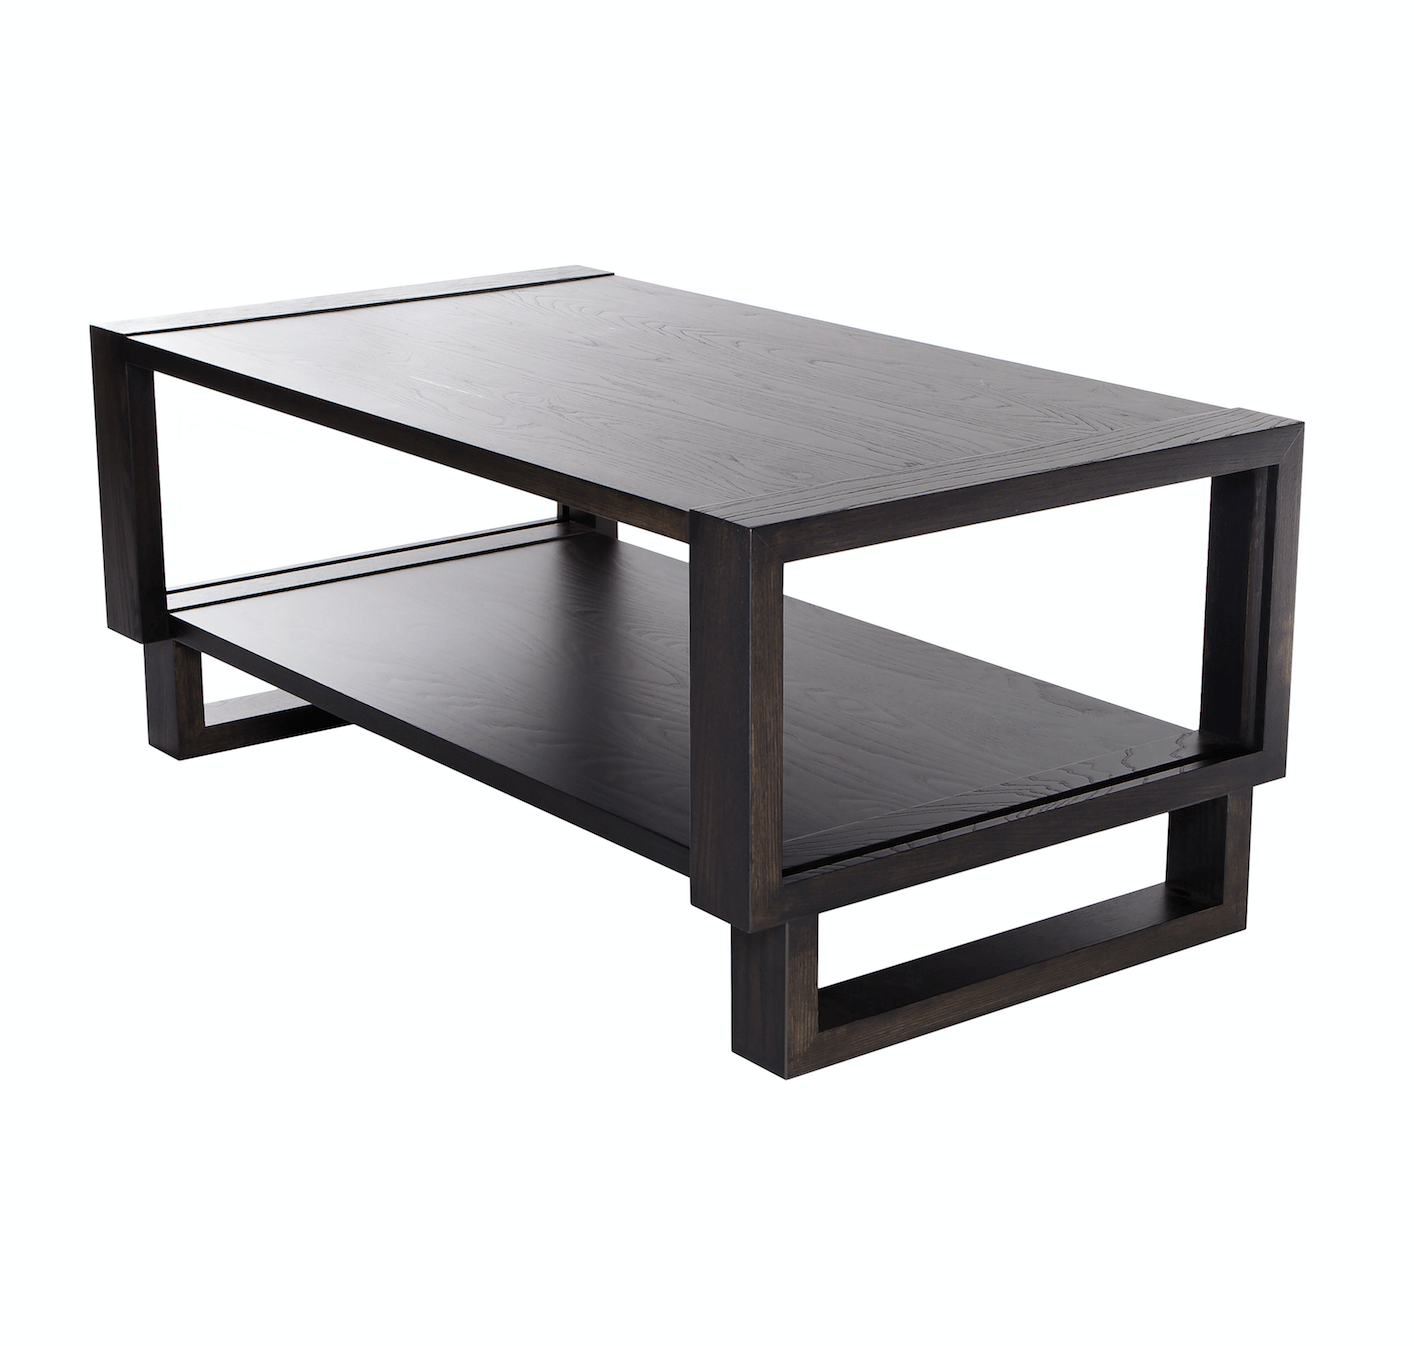 Gray modern coffee table for living room